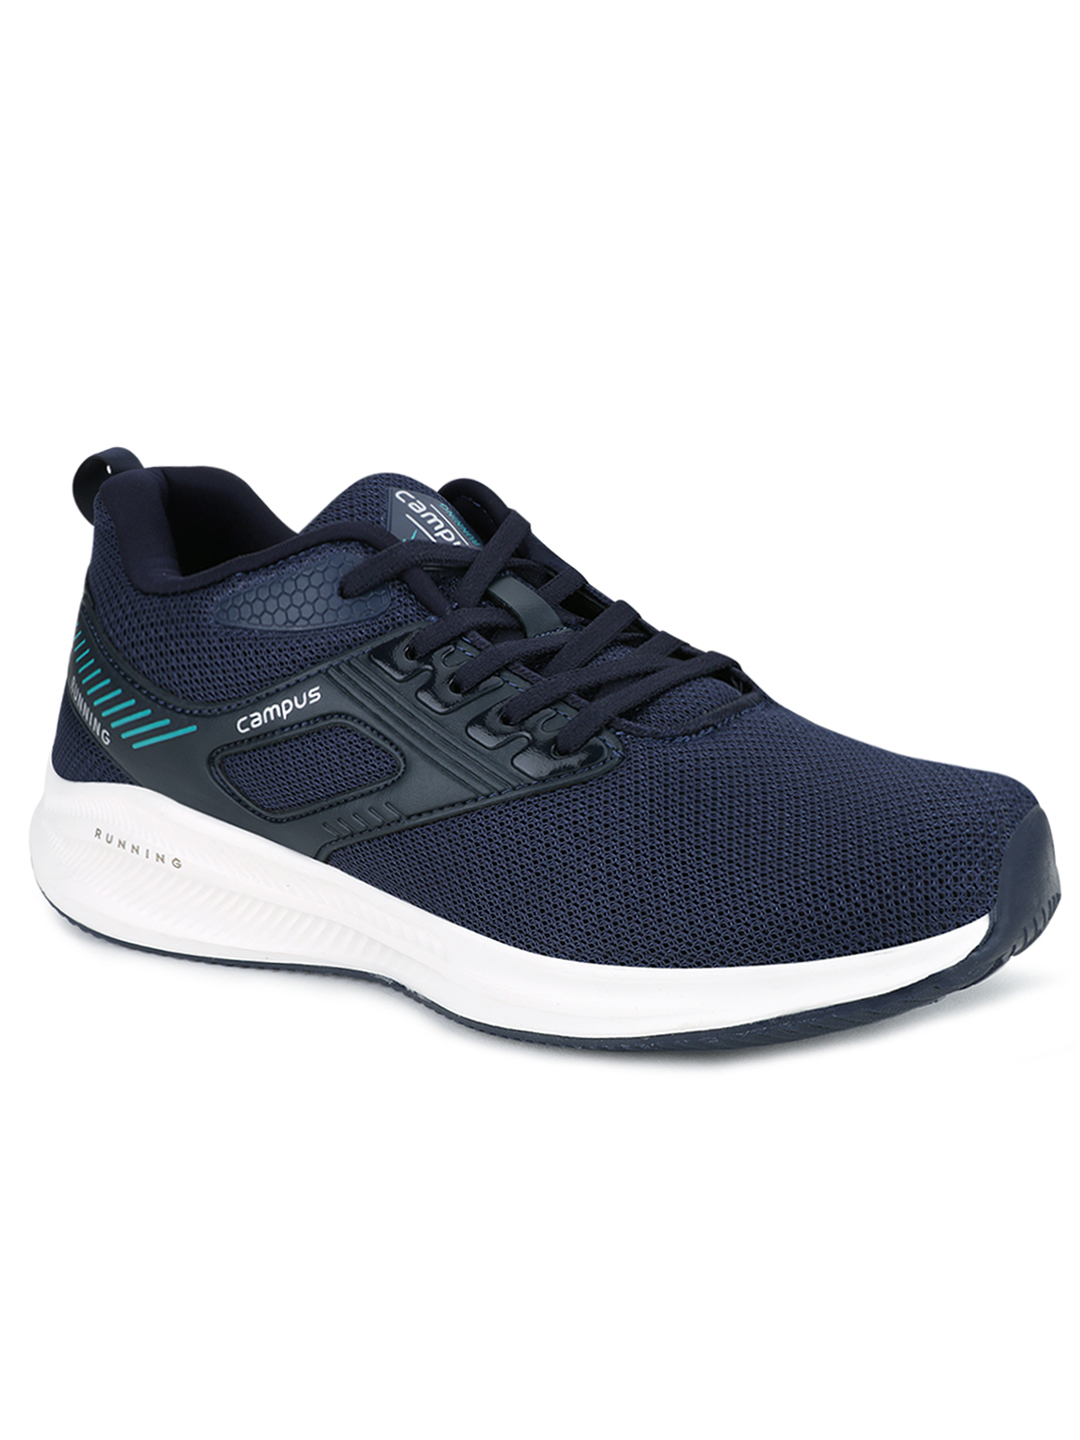 Campus Shoes | Navy Davis Running Shoes